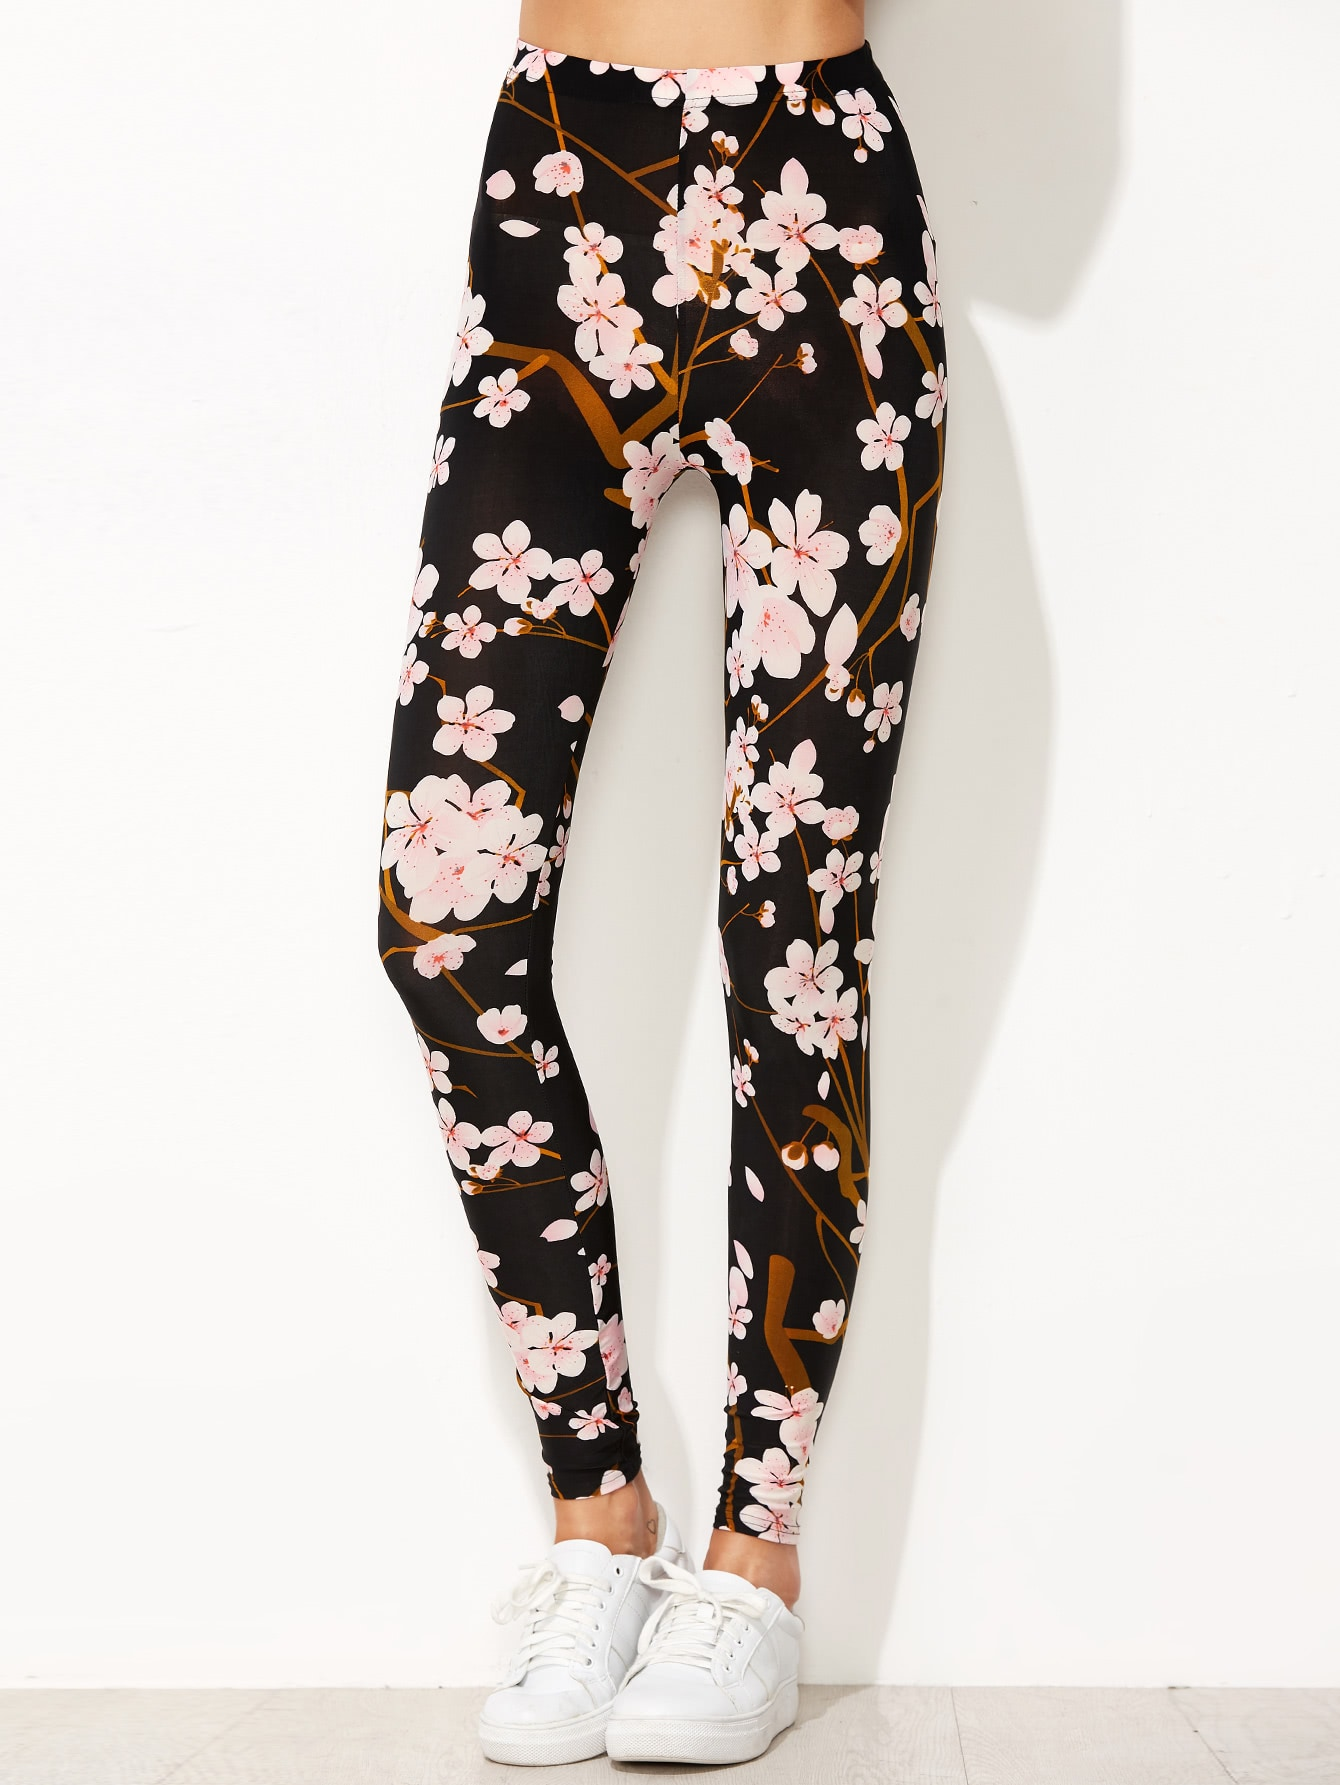 Shop for floral black leggings online at Target. Free shipping on purchases over $35 and save 5% every day with your Target REDcard.